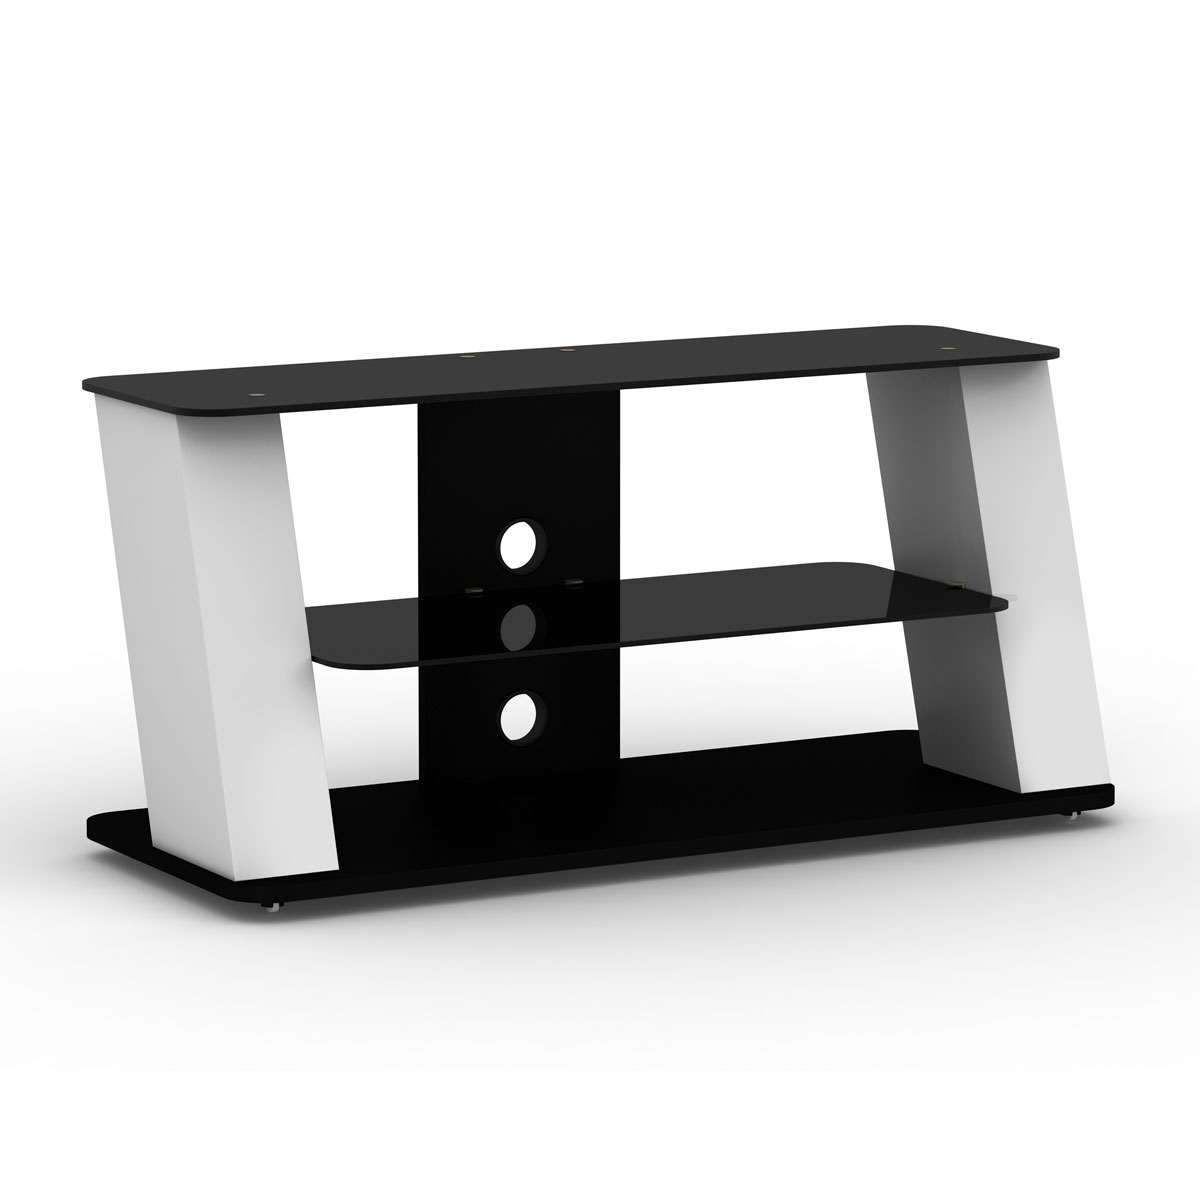 elmob alexa al 110 04 blanc meuble tv elmob sur. Black Bedroom Furniture Sets. Home Design Ideas